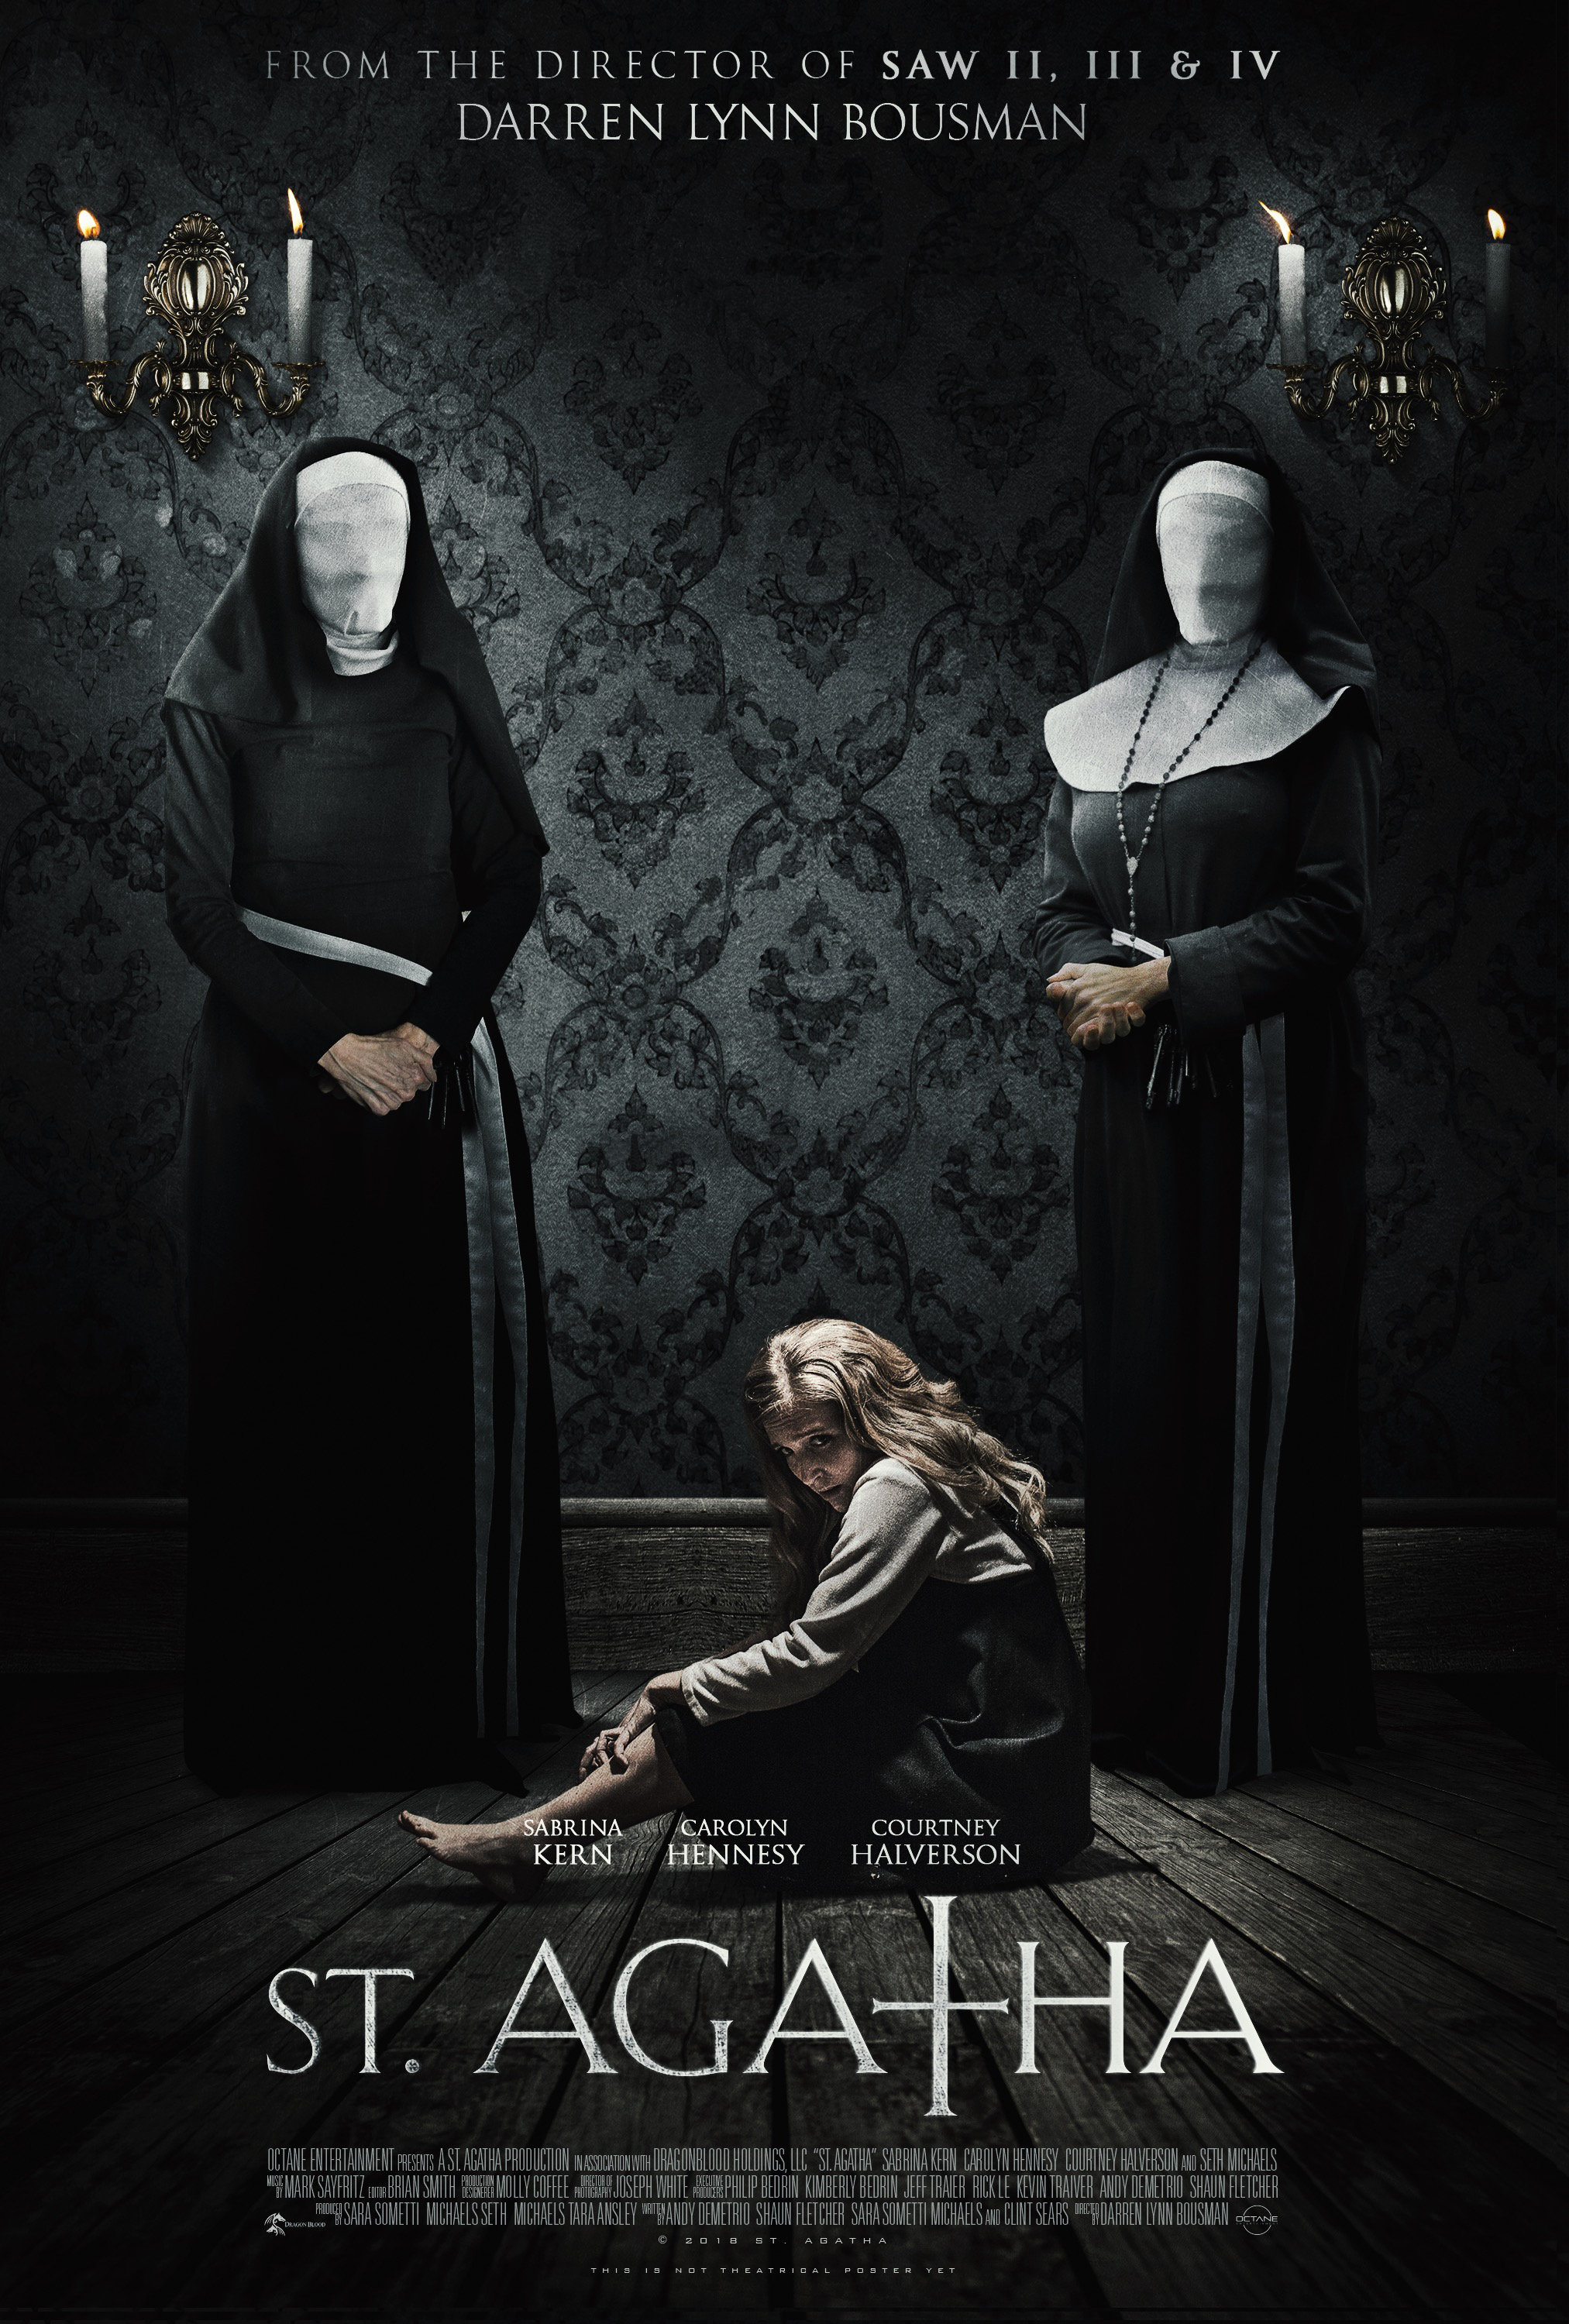 st agatha movie plot wikipedia